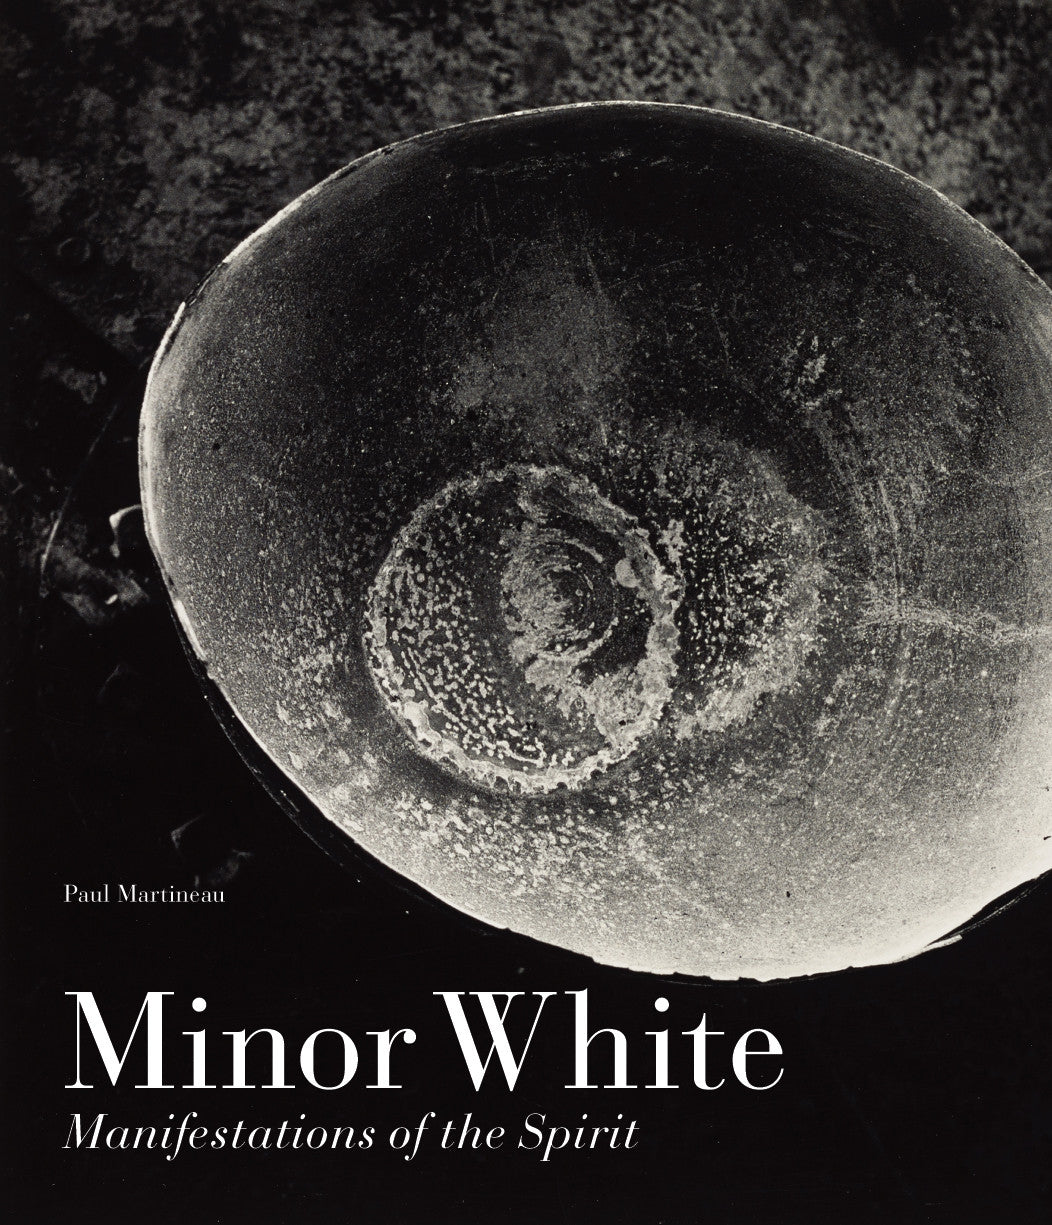 Minor White: Manifestations of the Spirit | Getty Store